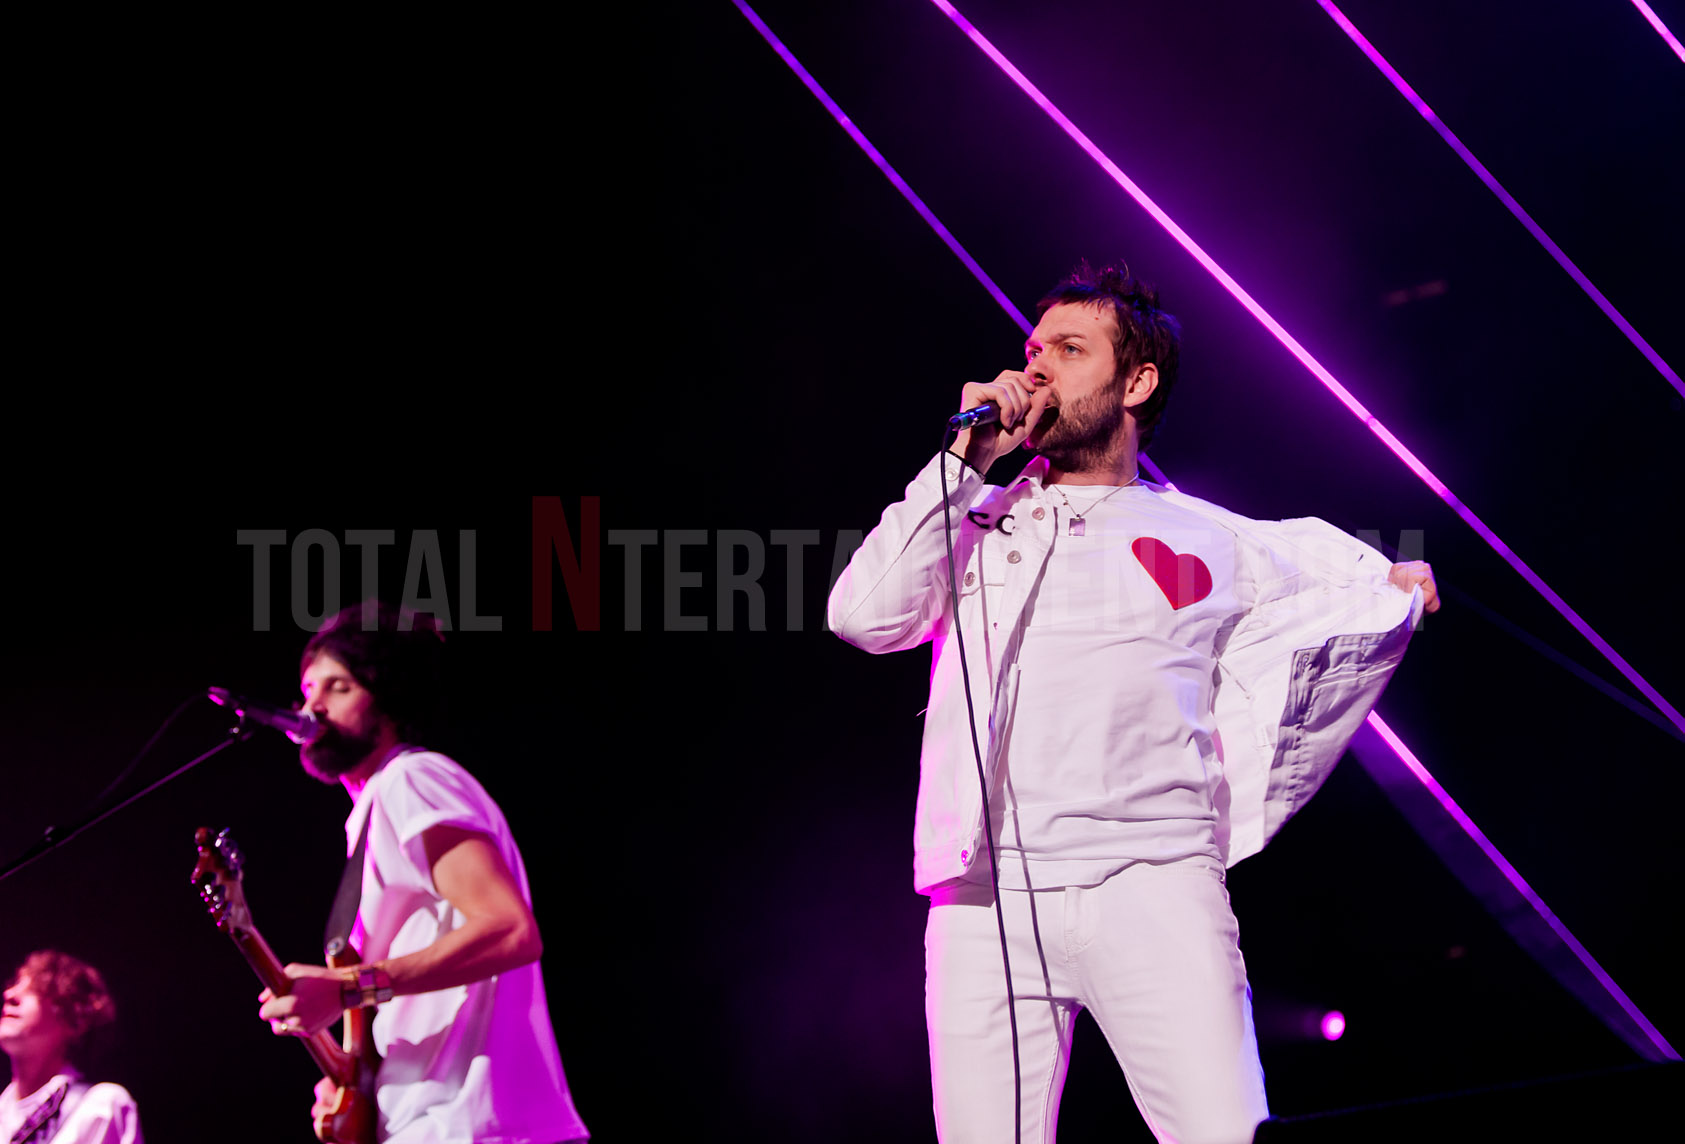 Kasabian, Liverpool, Music, Live Event, totalntertainment